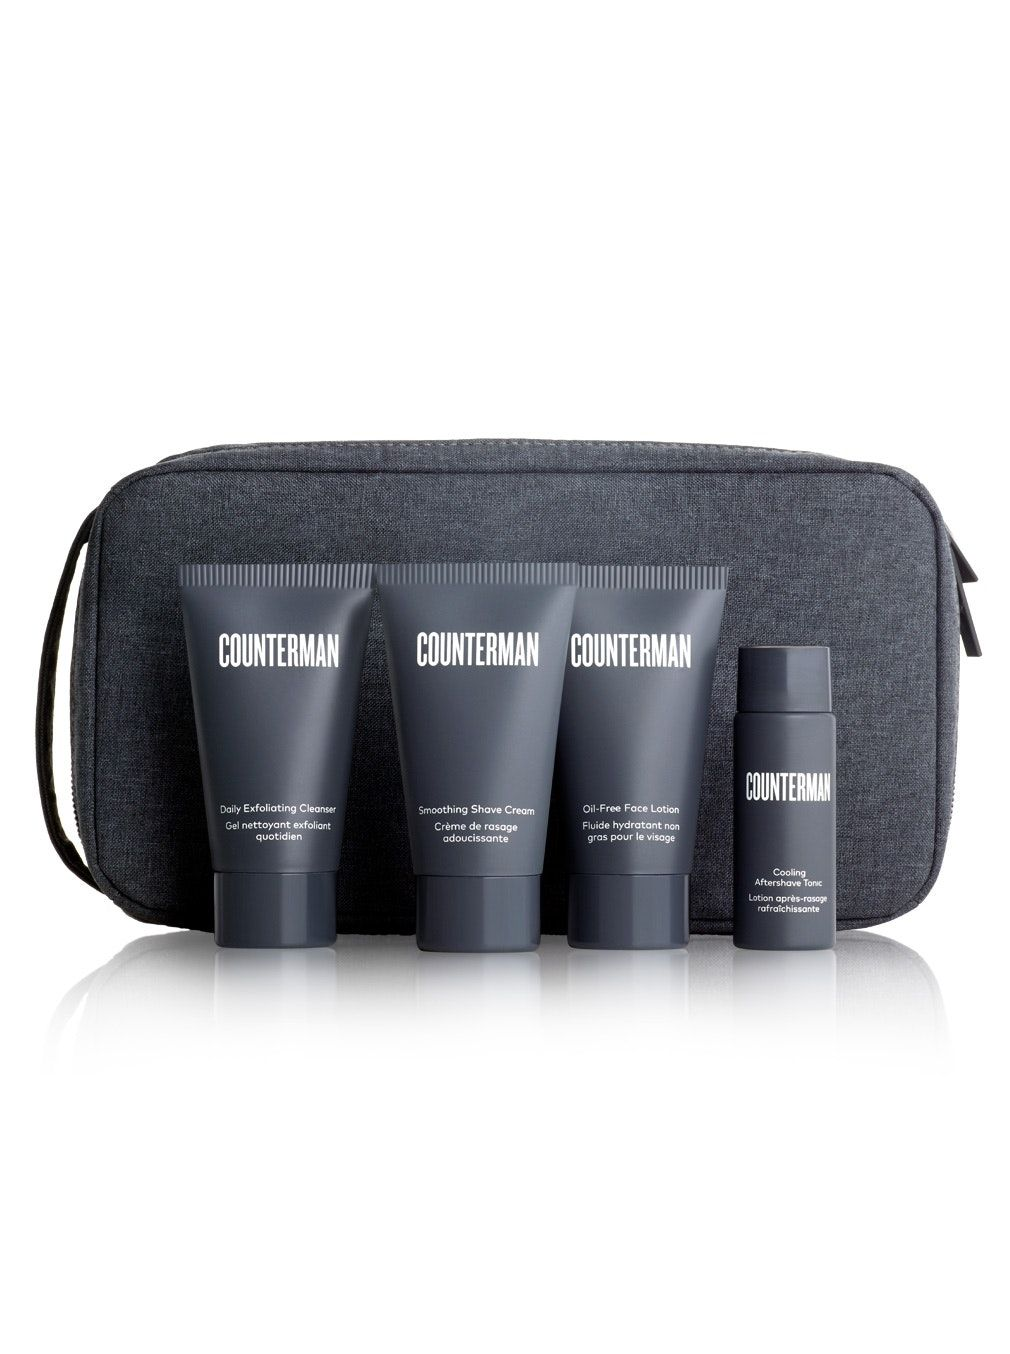 Counterman Travel Set  Finally products for the men!! Www